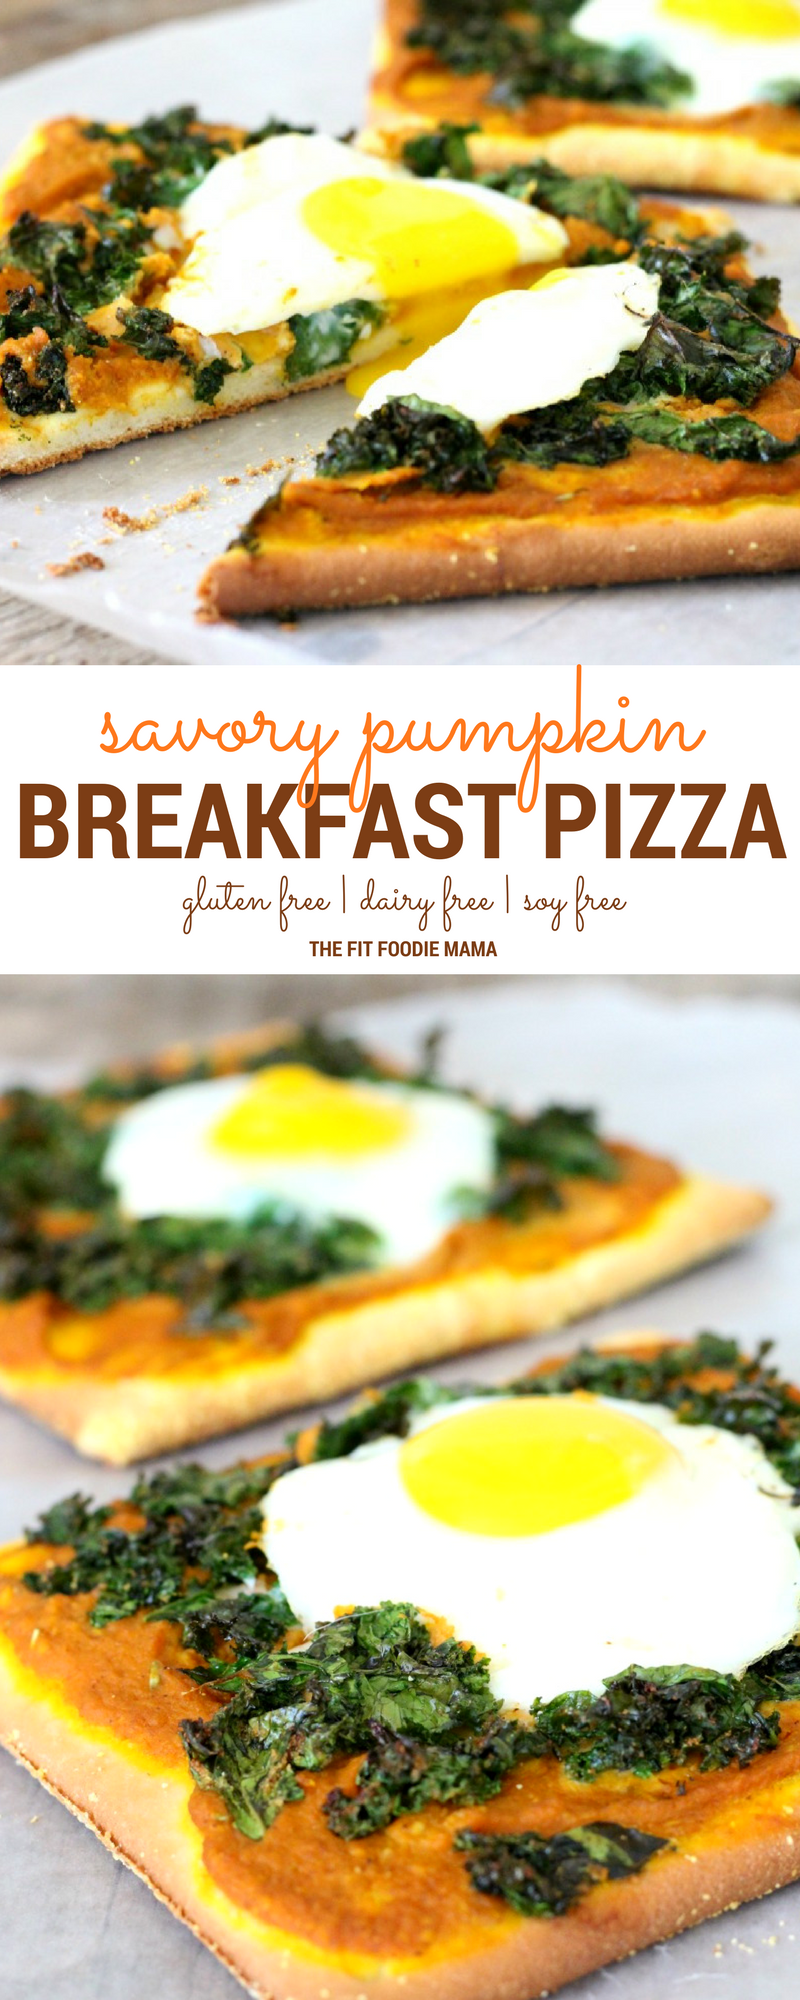 Quick and Easy Savory Pumpkin Breakfast Pizza! It's gluten free, dairy free, soy free and the perfect allergy friendly way to fuel your morning!